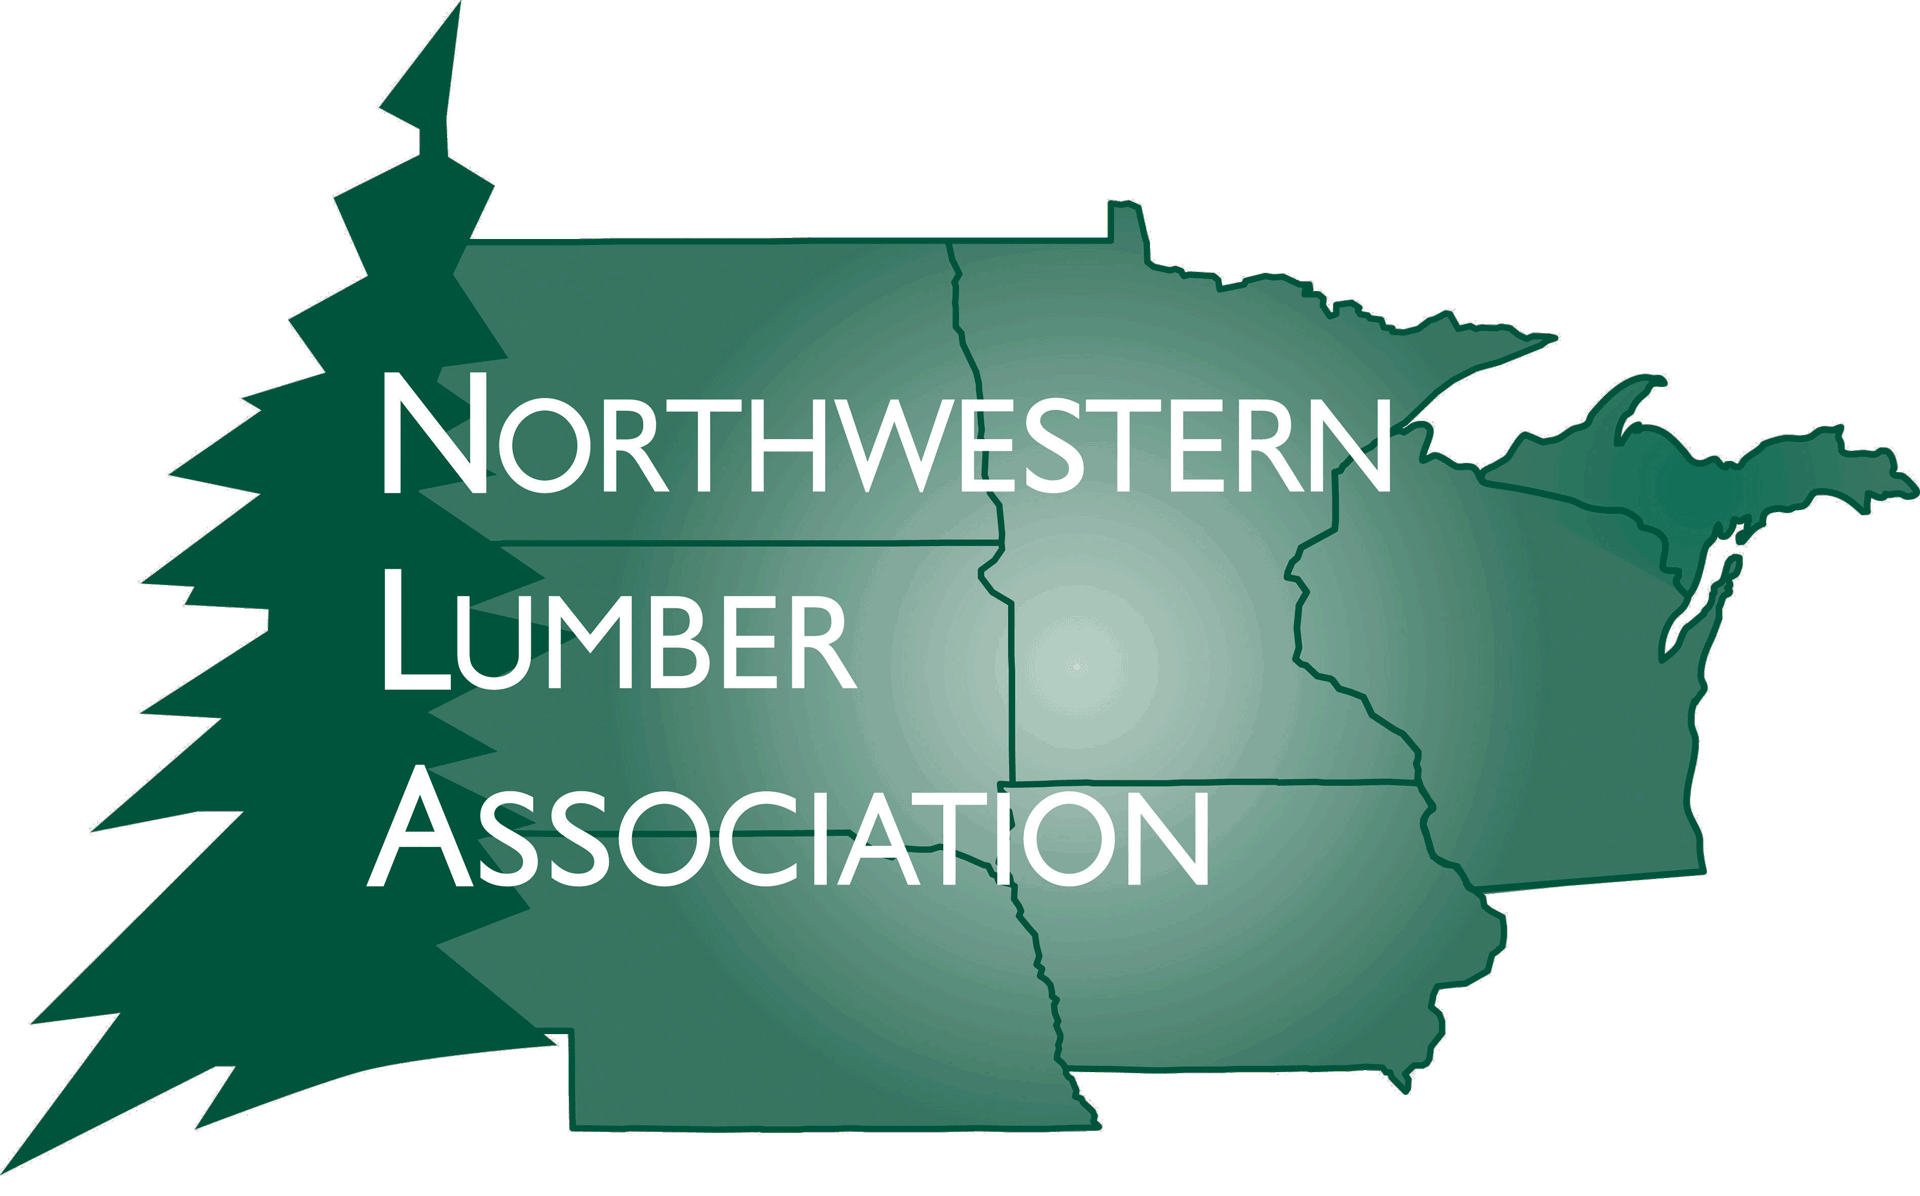 Northwestern Lumber Association Logo